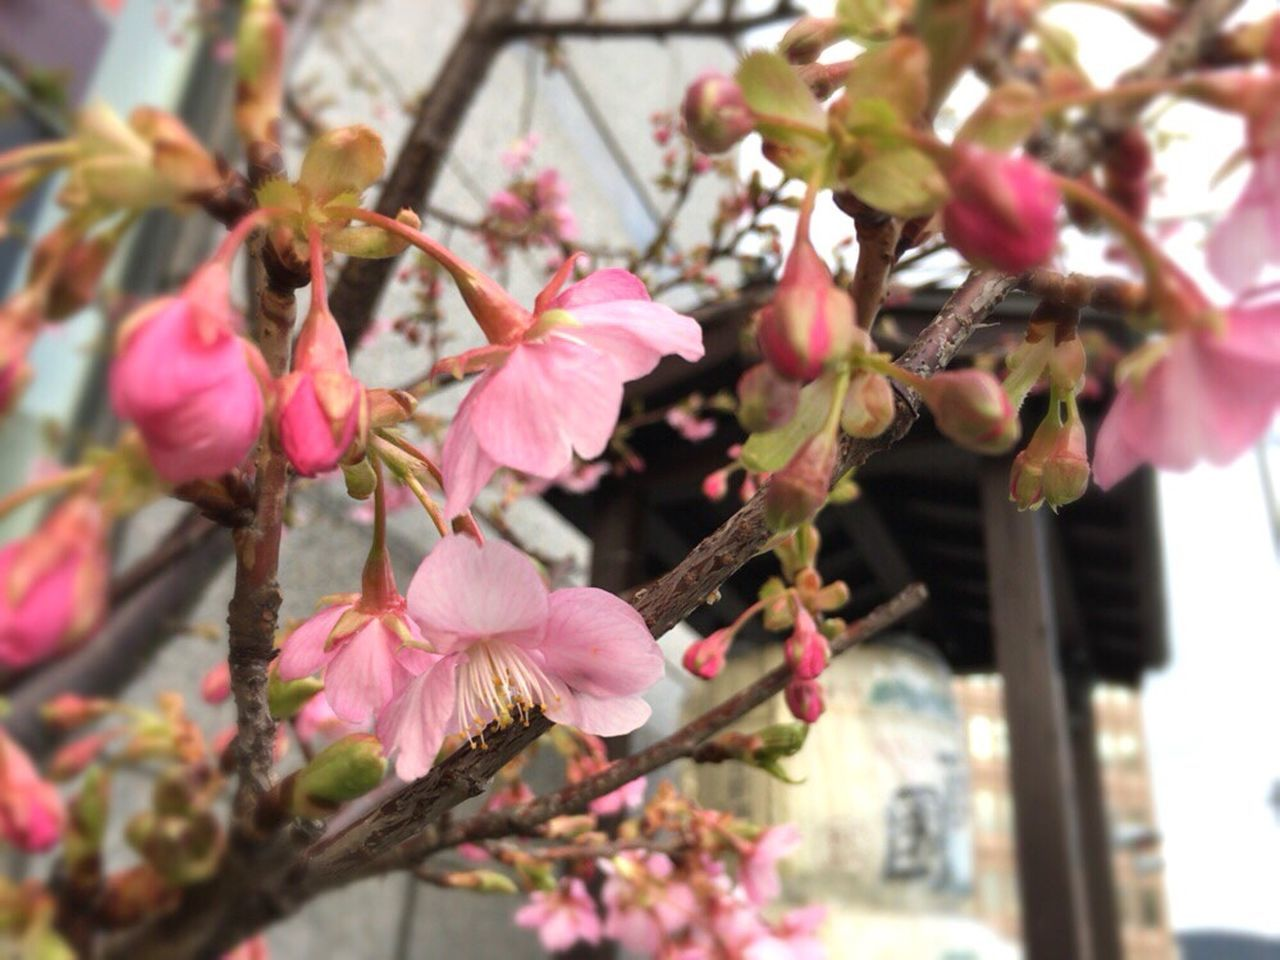 flower, growth, tree, fragility, beauty in nature, pink color, freshness, nature, no people, petal, day, blossom, springtime, outdoors, branch, close-up, focus on foreground, blooming, flower head